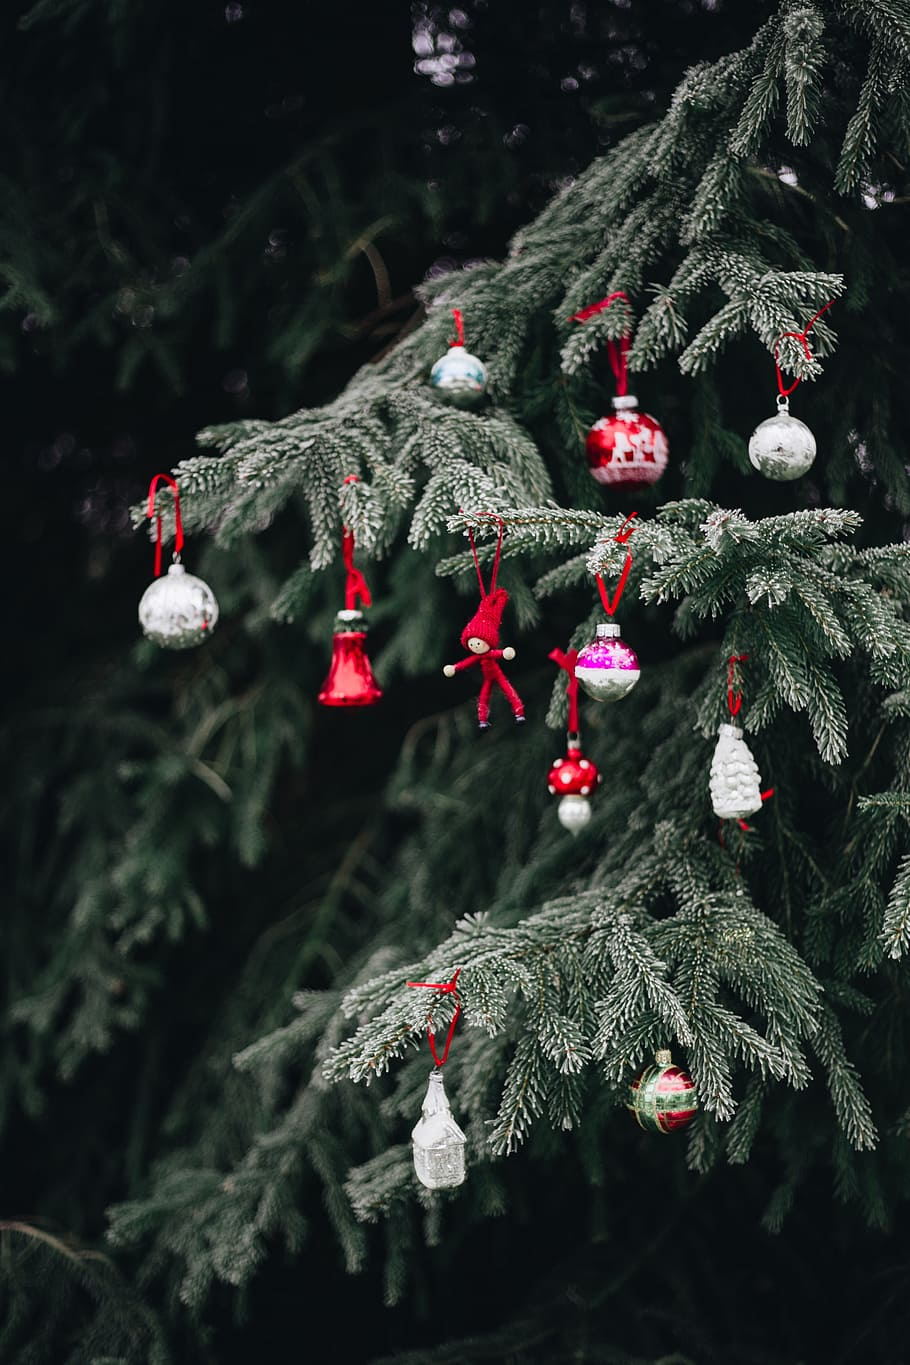 910x1365 HD wallpaper: Old-fashioned Christmas tree ornaments ...